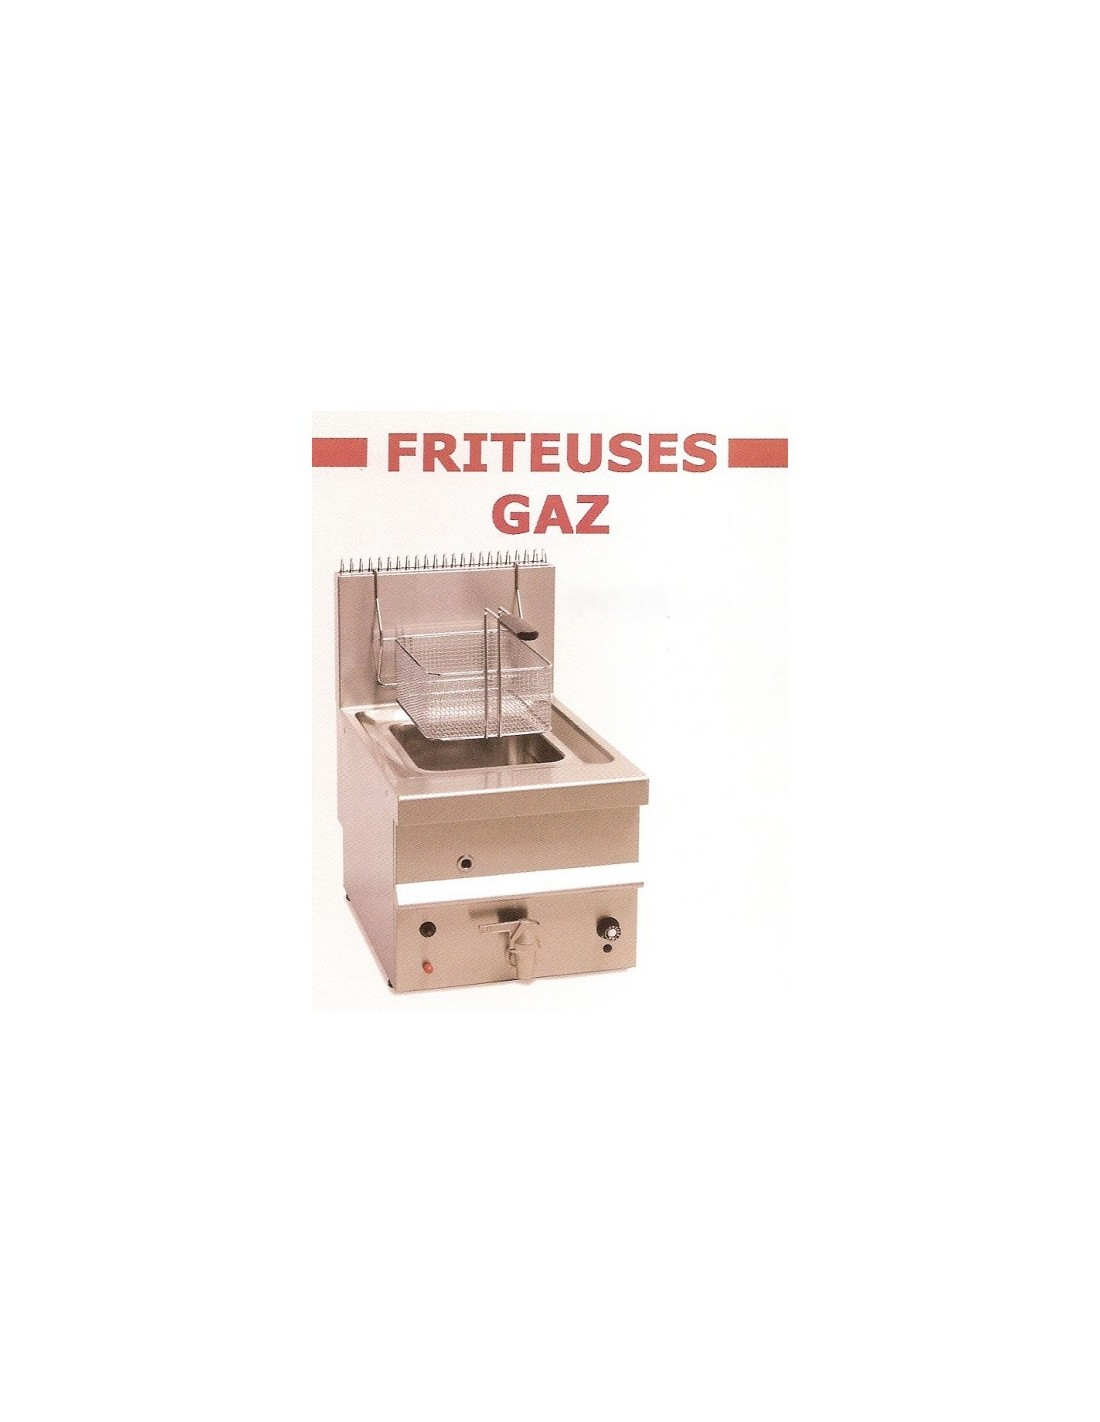 friteuse gaz 10 litres. Black Bedroom Furniture Sets. Home Design Ideas